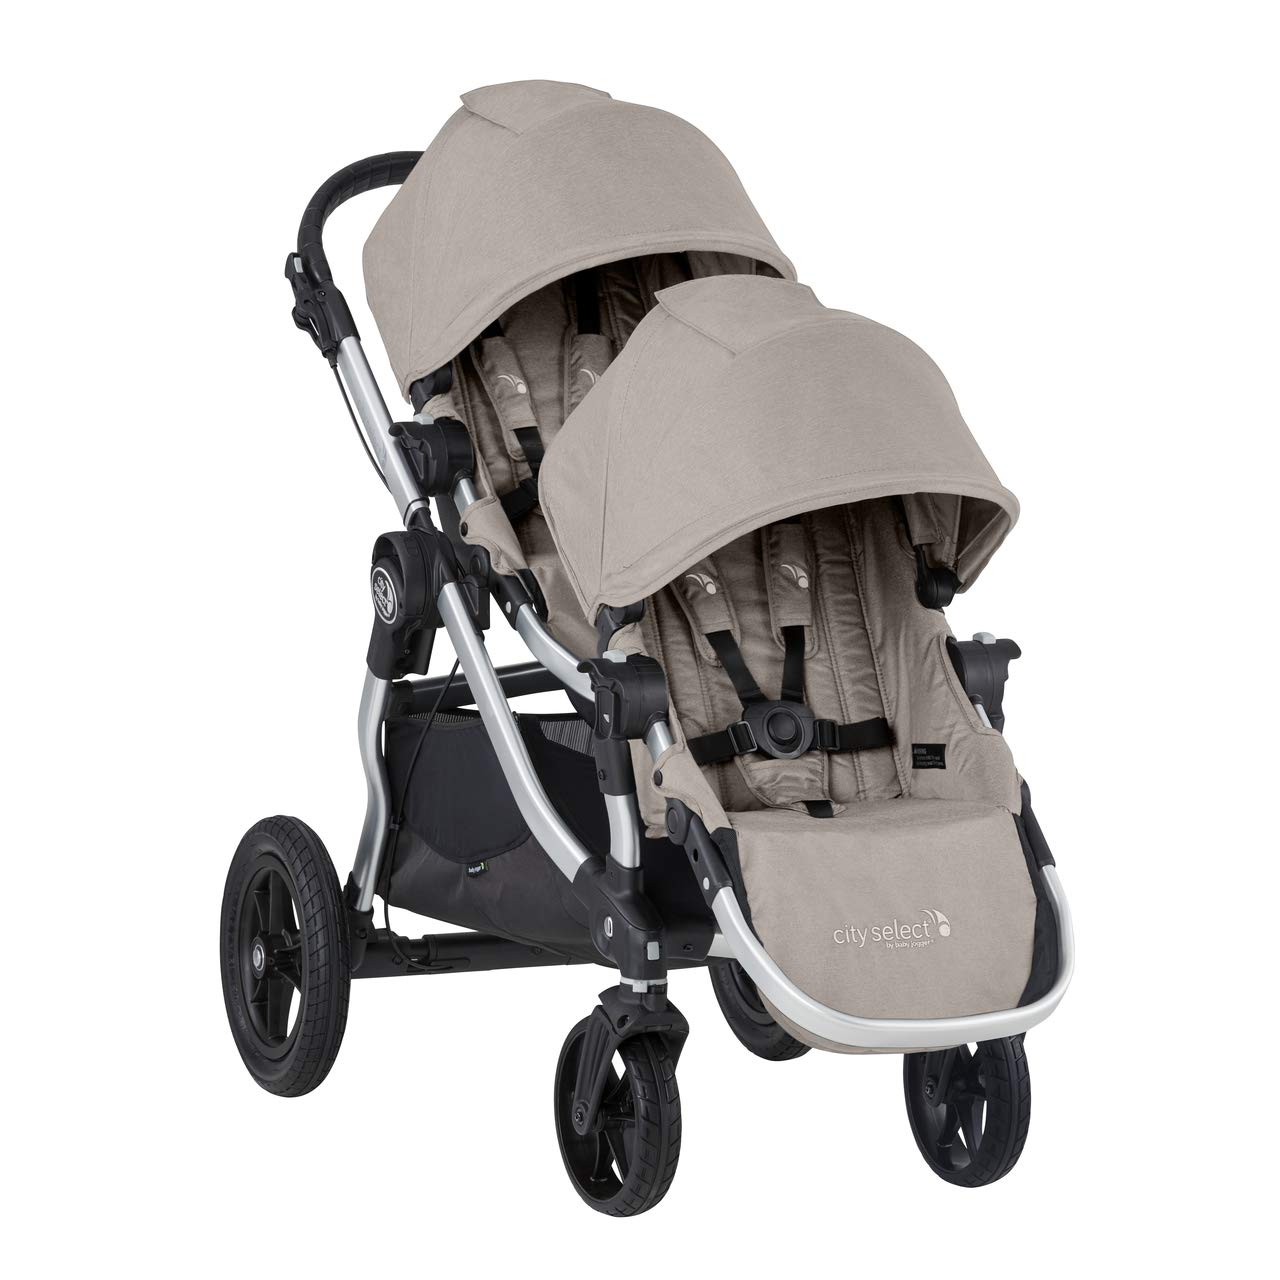 Baby Jogger City Select Double Stroller | Baby Stroller with 16 Ways to Ride, Included Second Seat | Quick Fold Stroller, Paloma